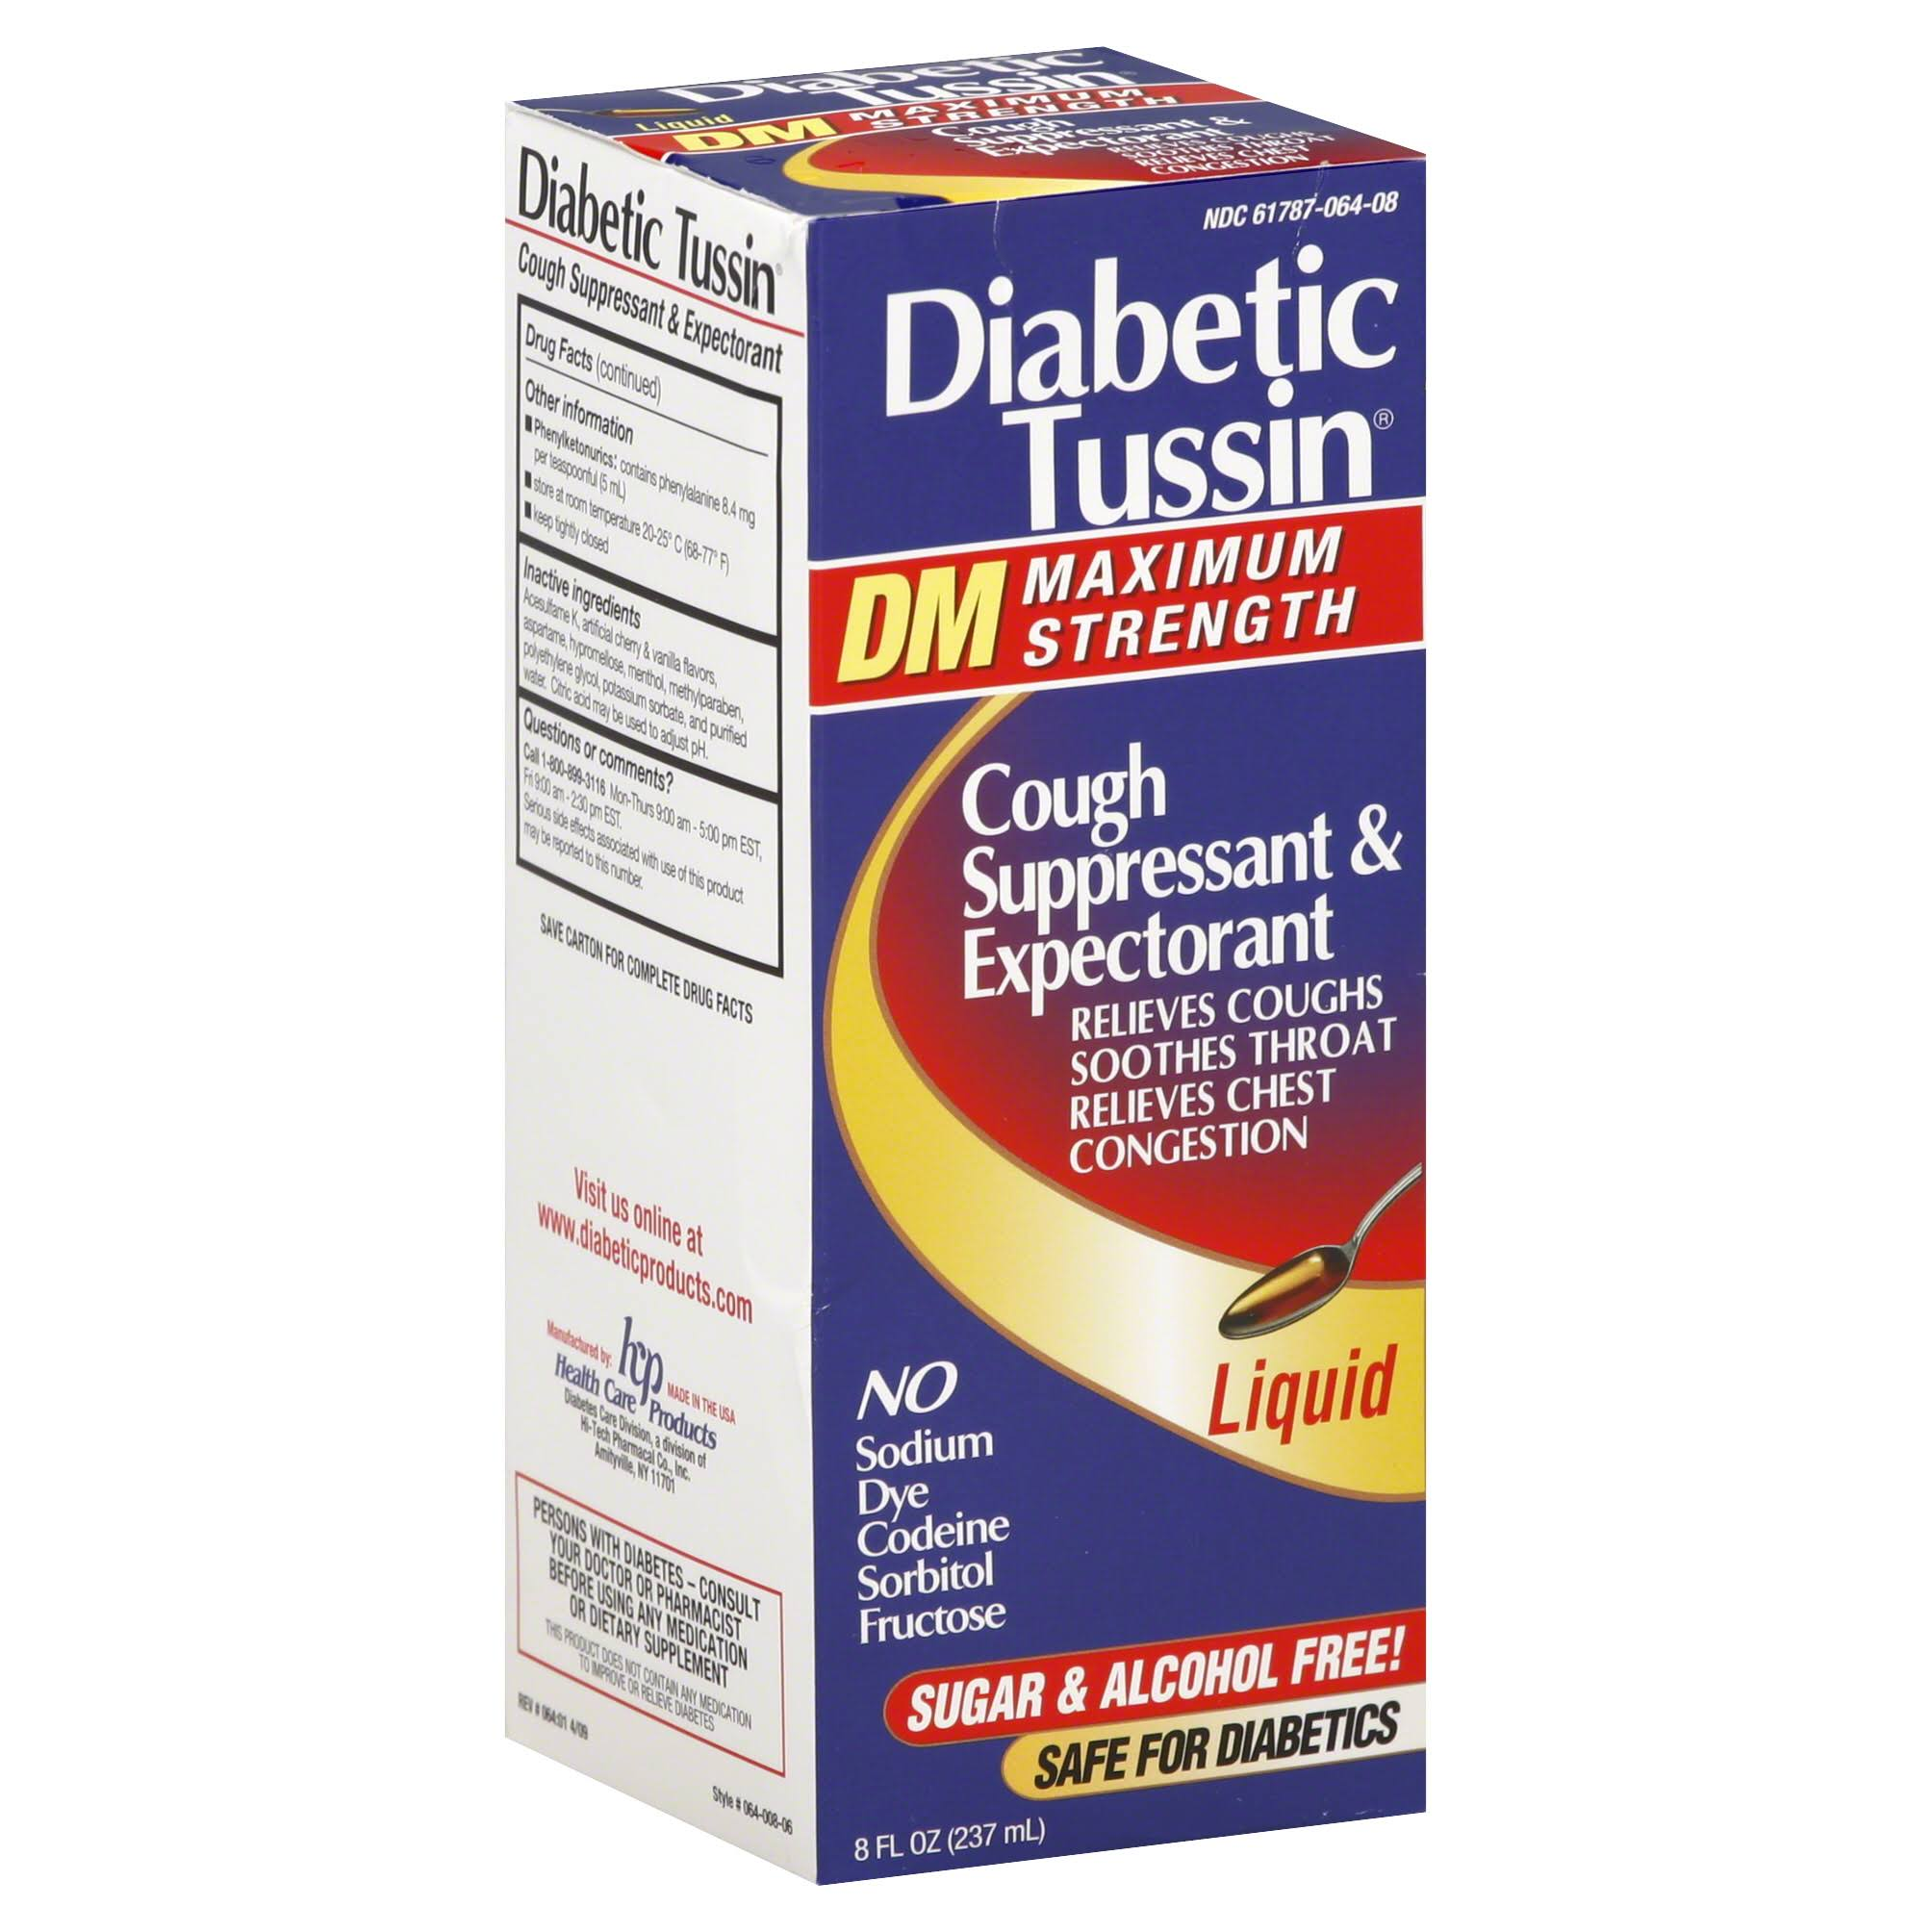 Diabetic Tussin DM Cough Suppressant & Expectorant - Maximum Strength, 8 oz